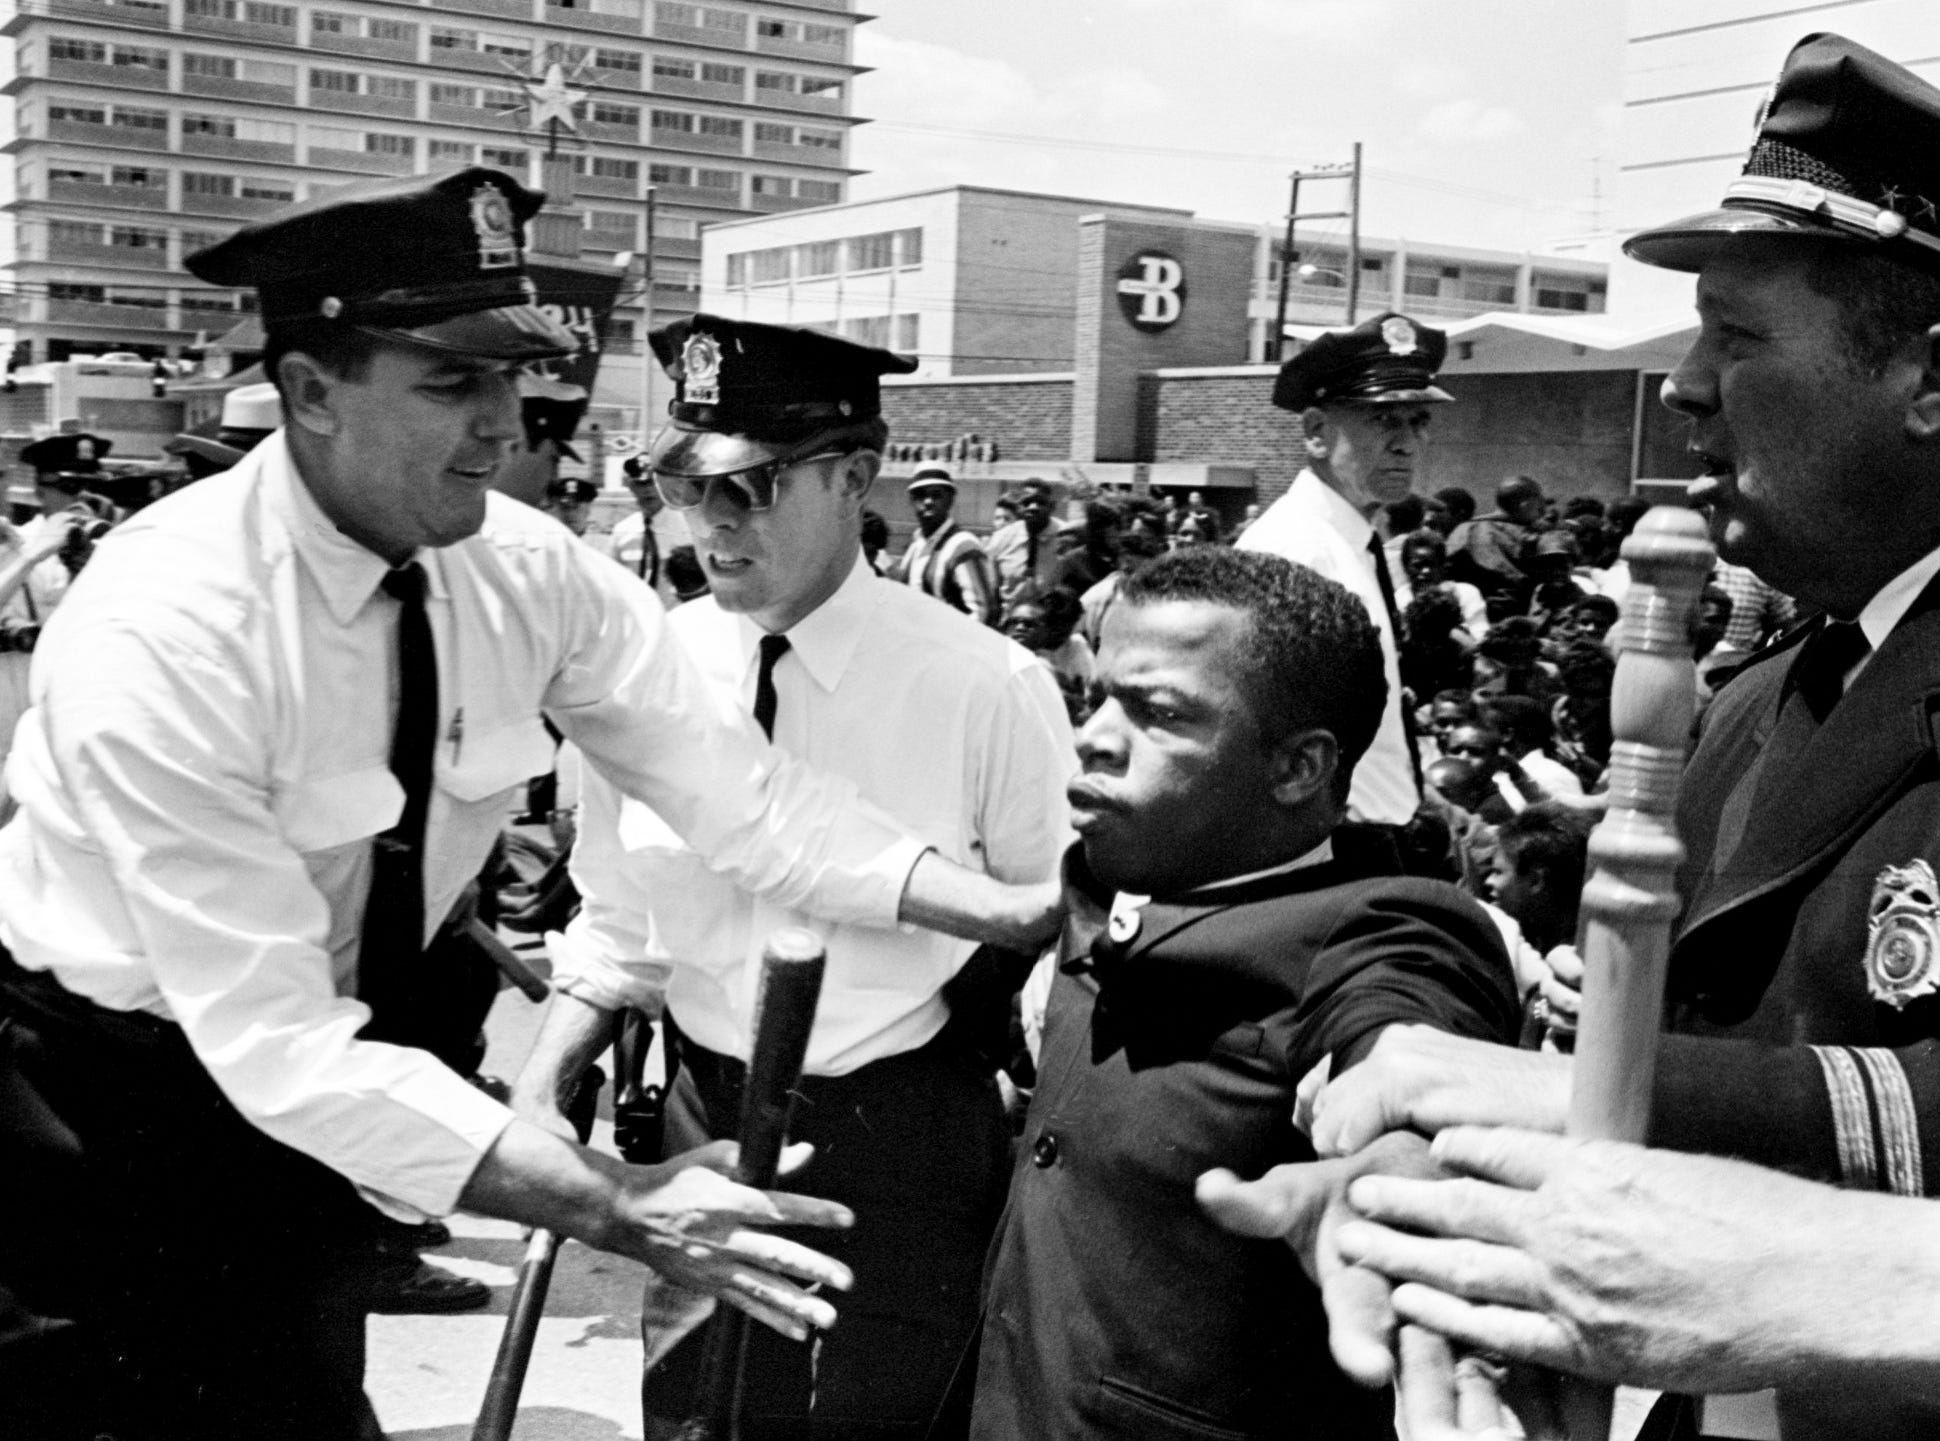 Metro police officers grab John Lewis, one of the leaders of the civil rights demonstrators, at Morrison's Cafeteria on West End Avenue on April 29, 1964.